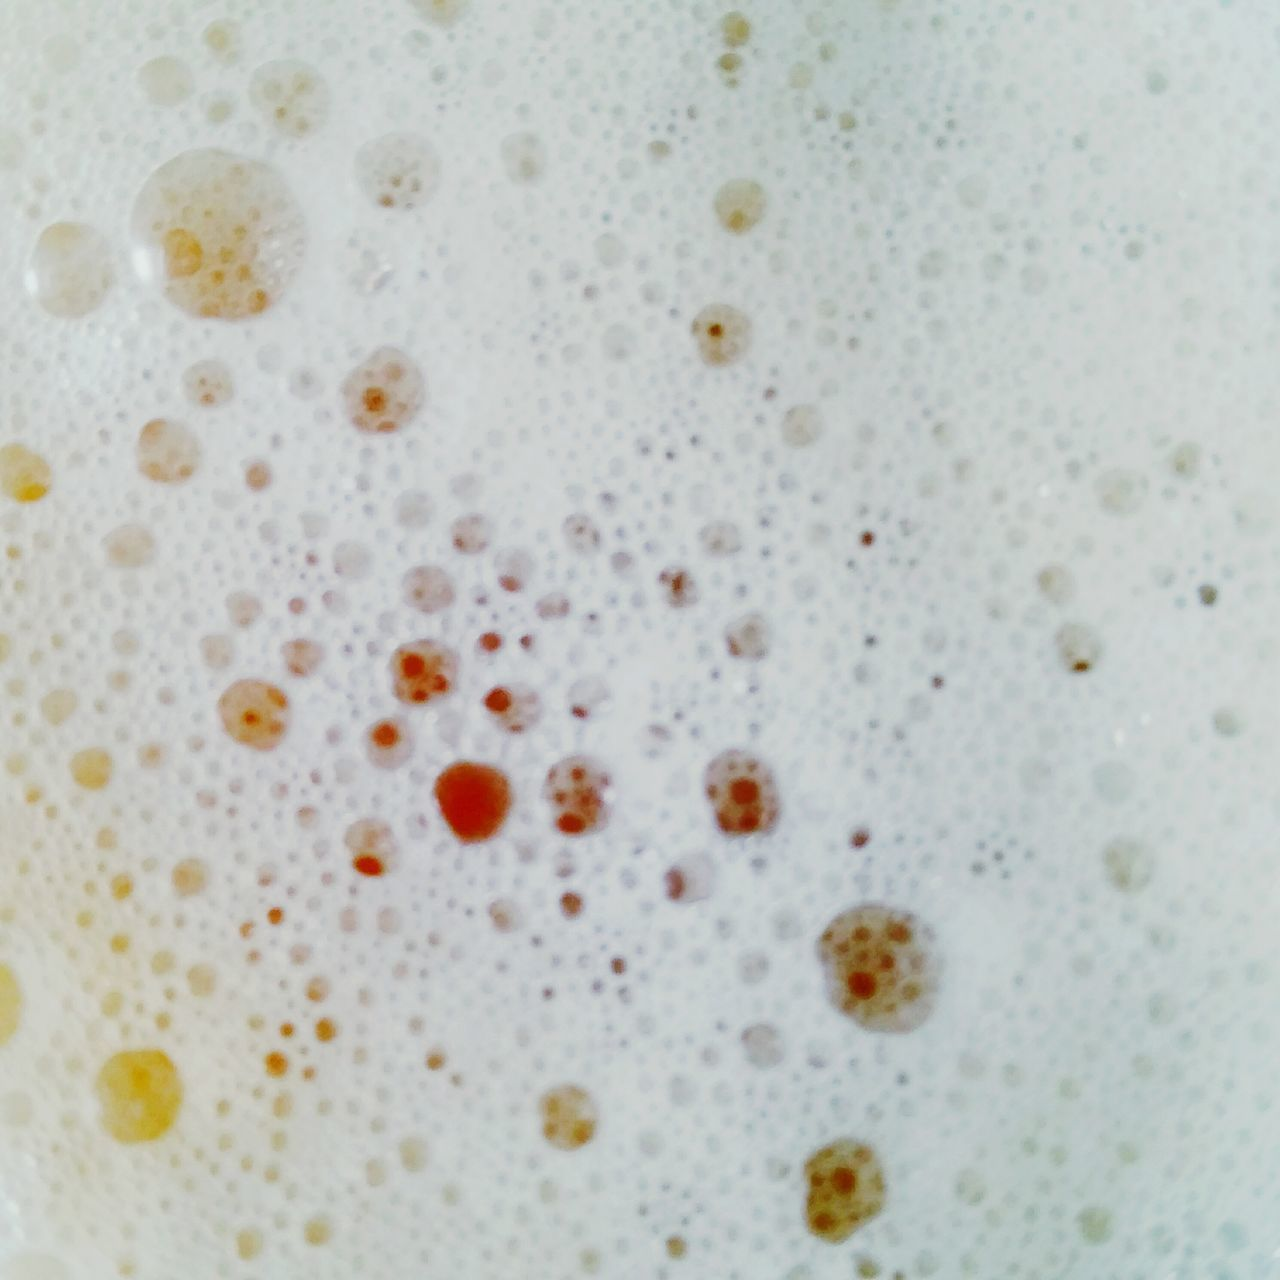 Texture Textures And Surfaces Super Sensory Sensory Smell Taste Coffee Point Of View Liquid Froth White Shafes Of White